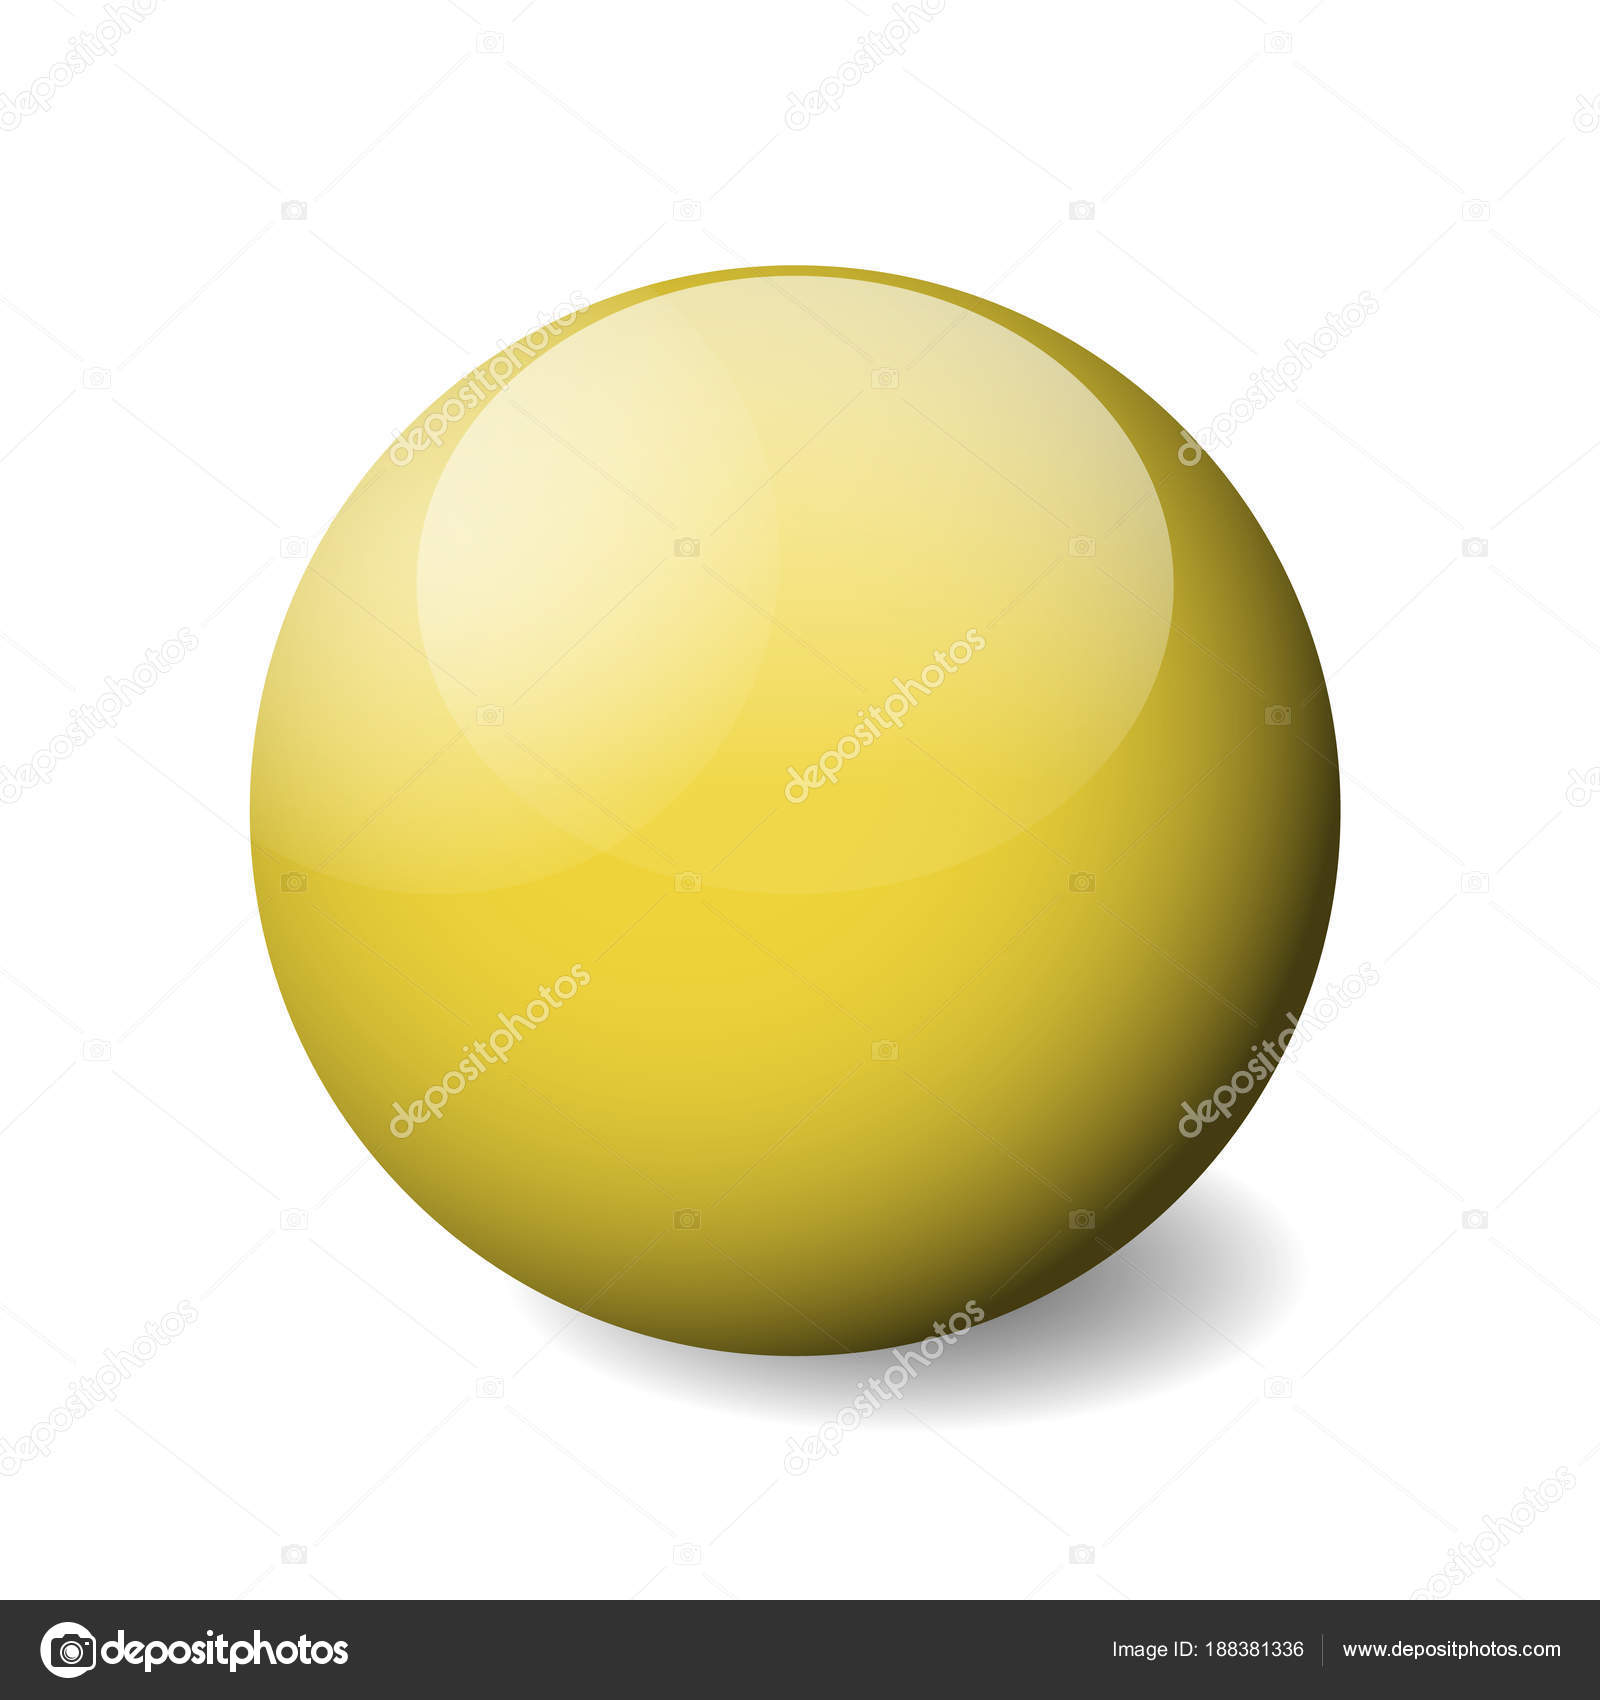 Yellow sphere illustration photo